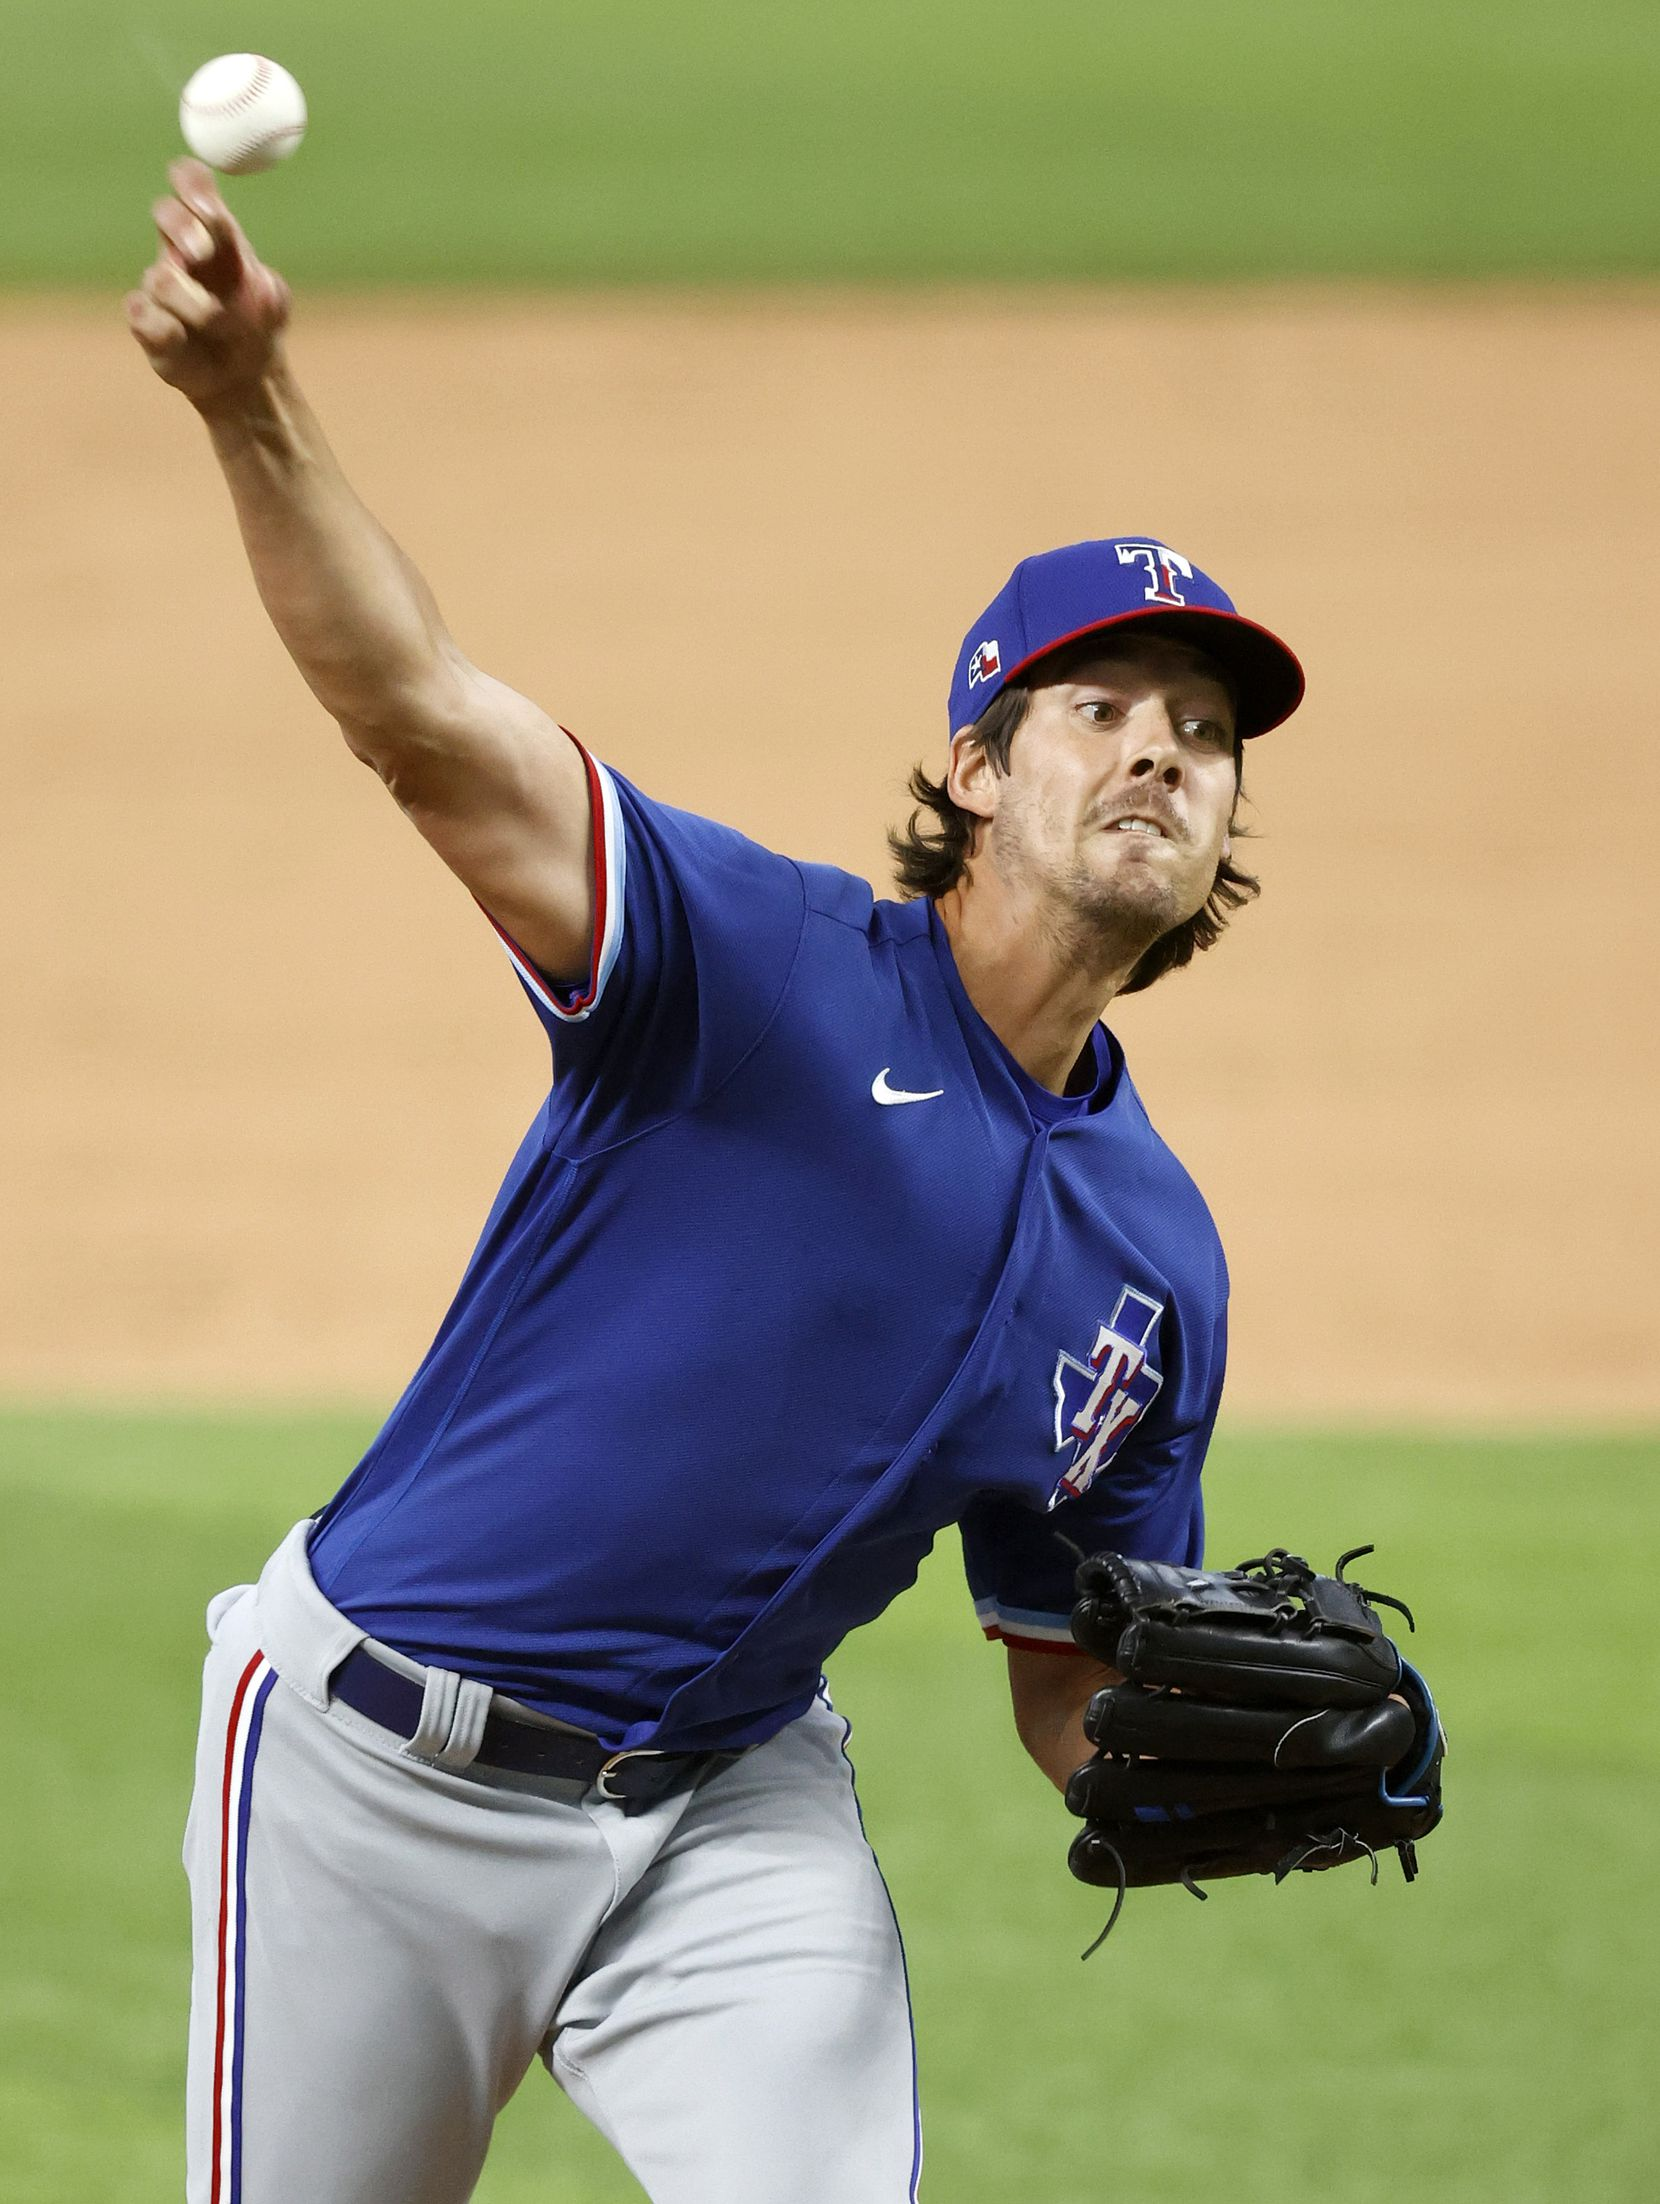 Texas Rangers Luke Farrell throws in relief during an intrasquad game at Summer Camp inside Globe Life Field in Arlington, Texas, Friday, July 10, 2020. (Tom Fox/The Dallas Morning News)